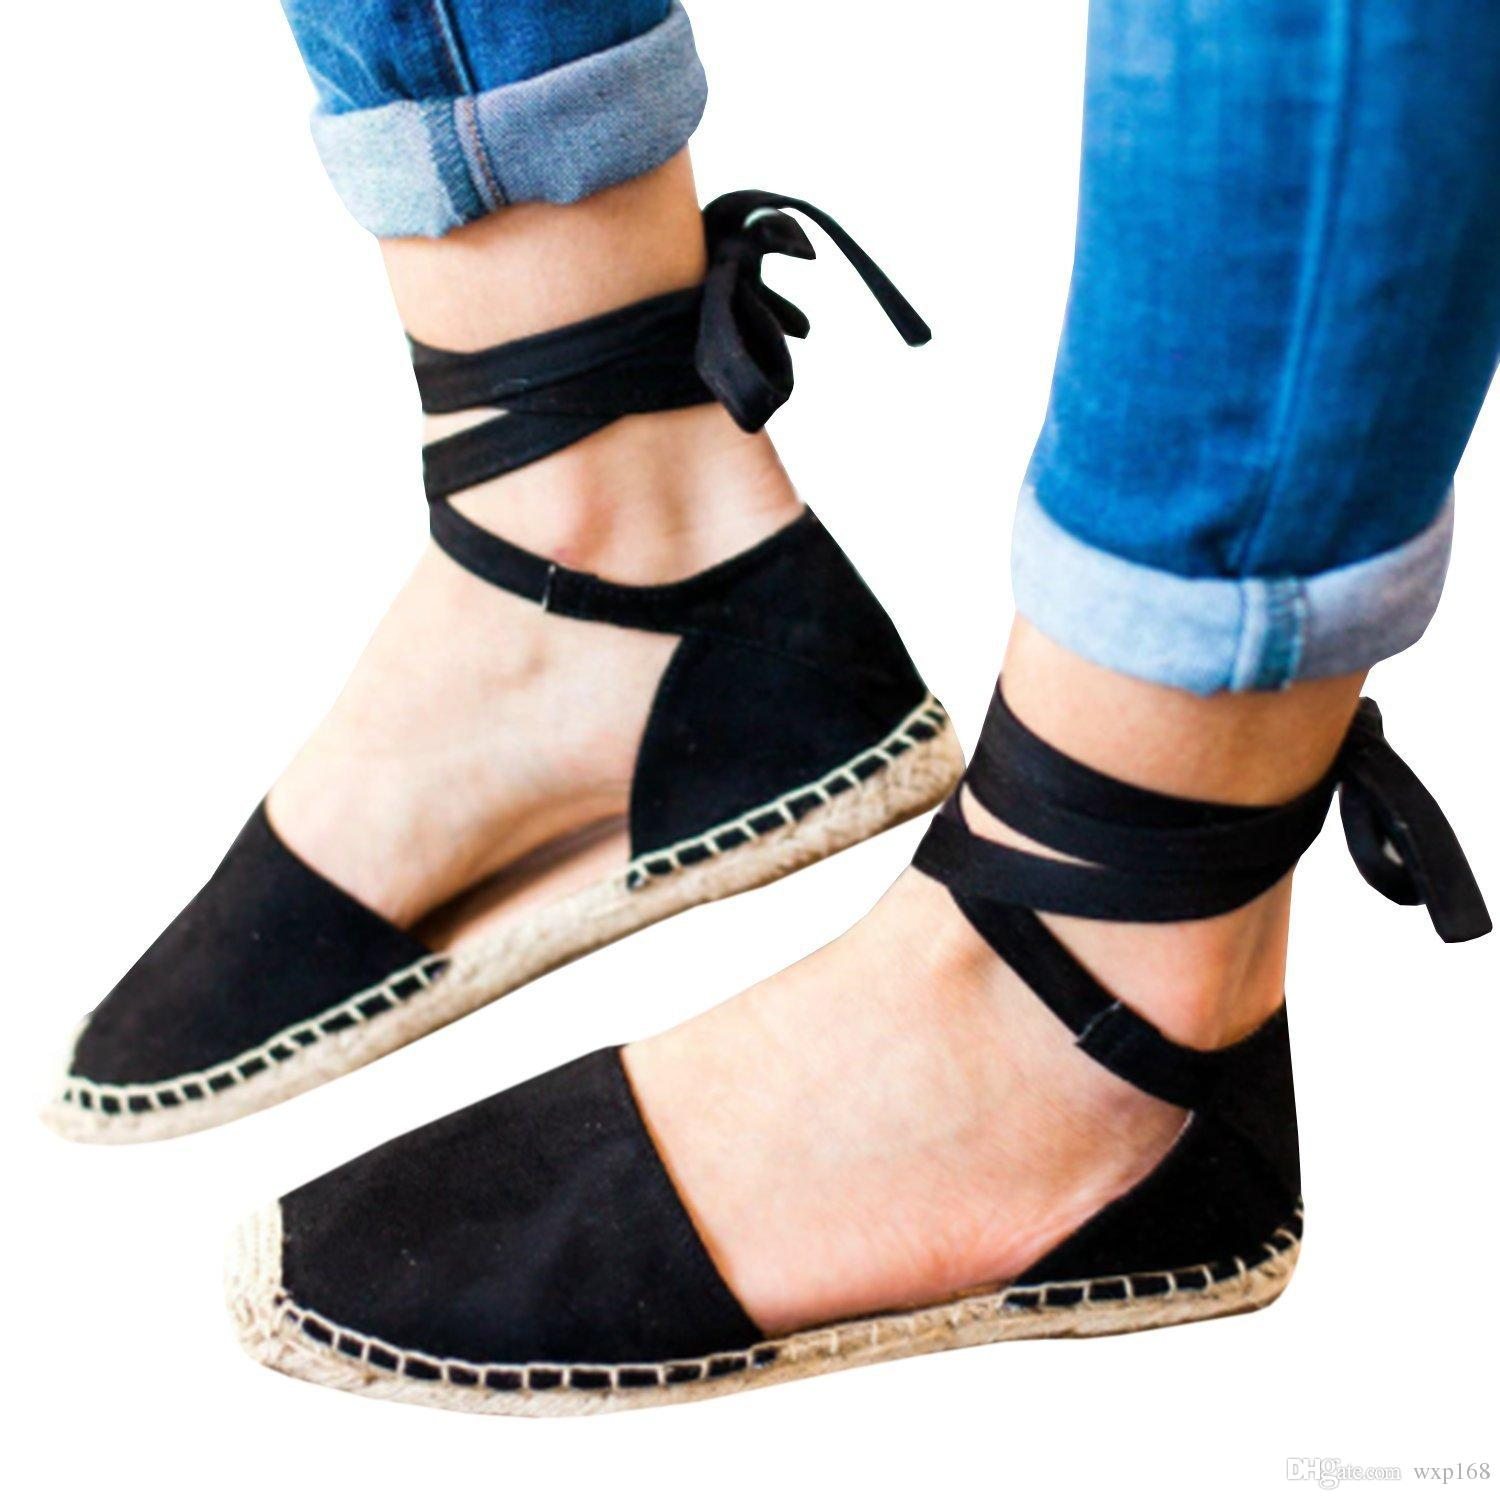 81c8a465f6353b 2019 Women Roman Sandals Flats Shoes Platform Mules Lace Up Ankle Strap  Fisherman Shoes Woman Straw Round Toes Plus Size Ladie Walking Sandals  Sandals From ...